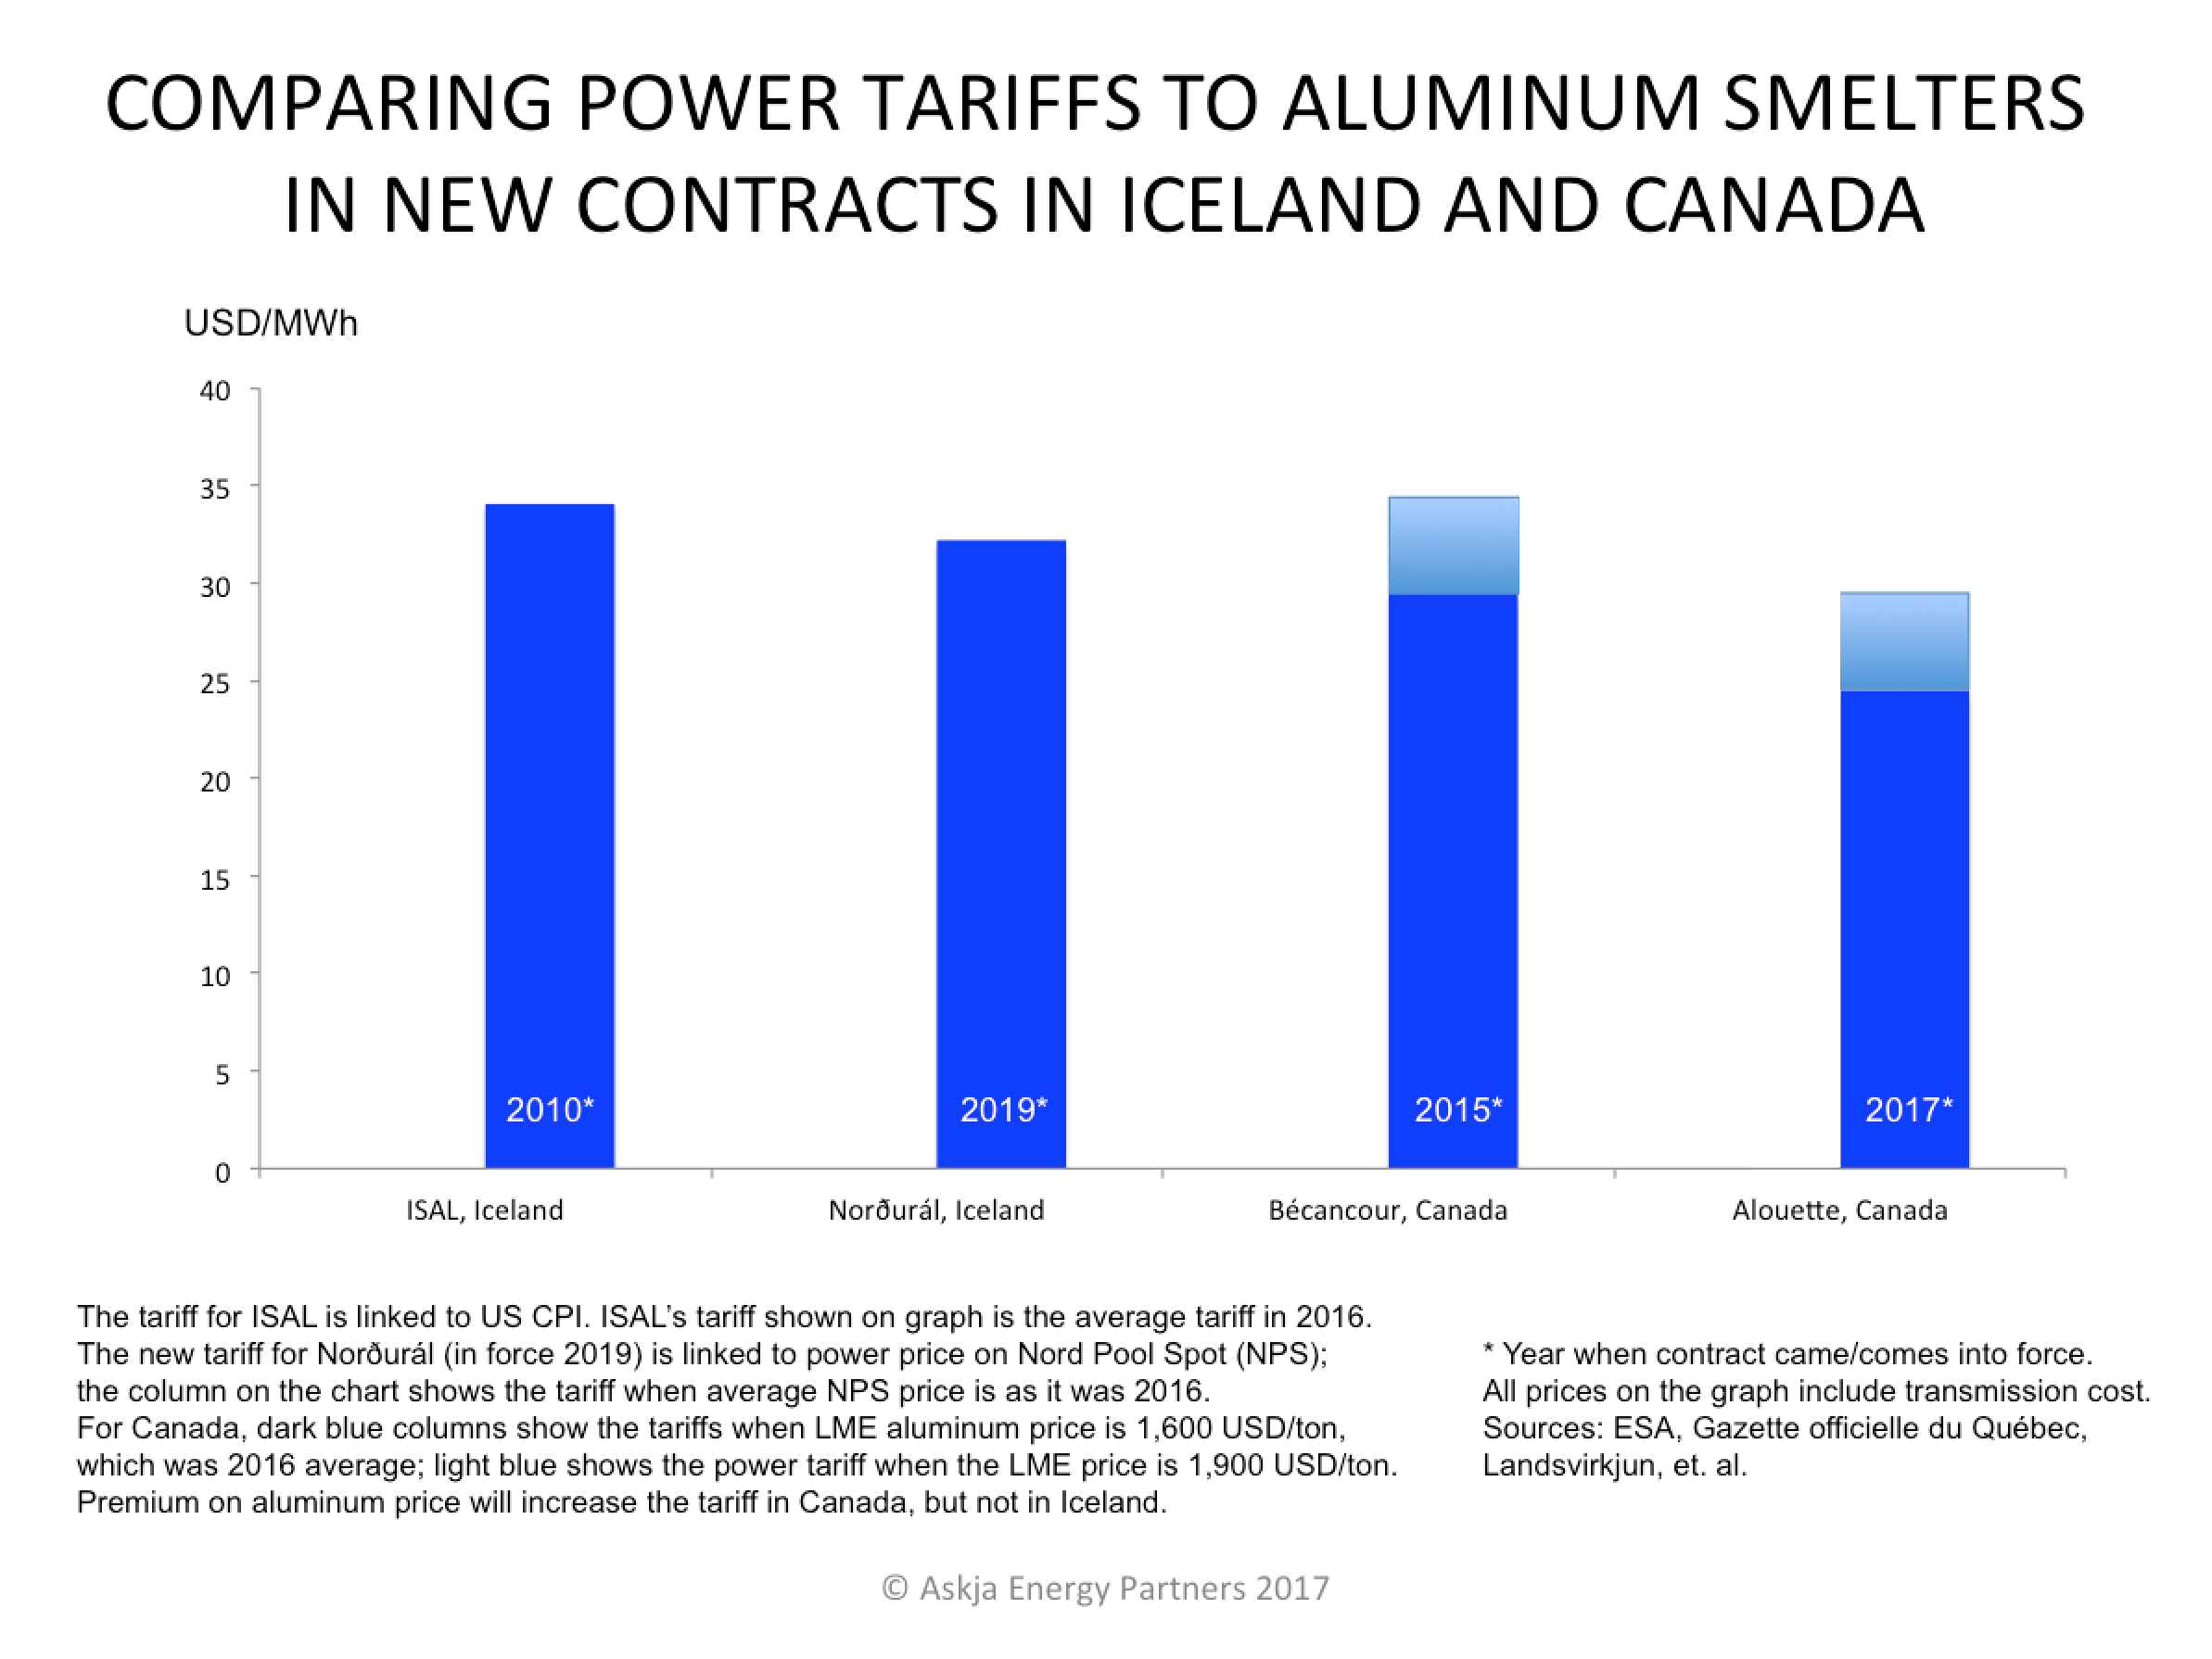 The growth of utility tariffs in Russia is too significant 40